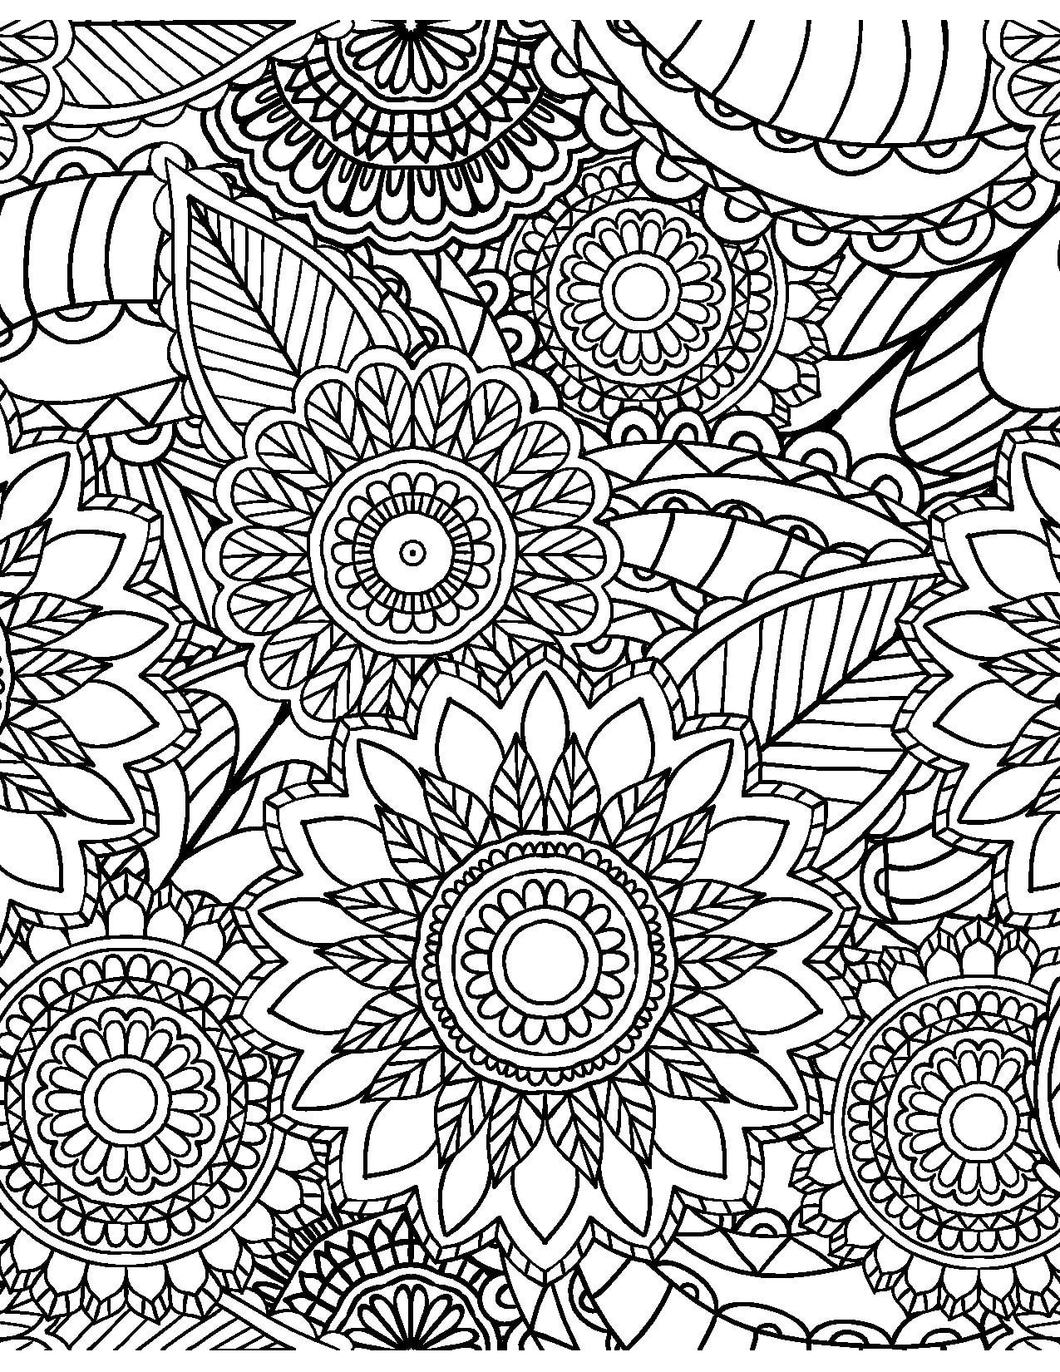 patterns for colouring for adults printable abstract pattern adult coloring pages 01 for patterns adults colouring for